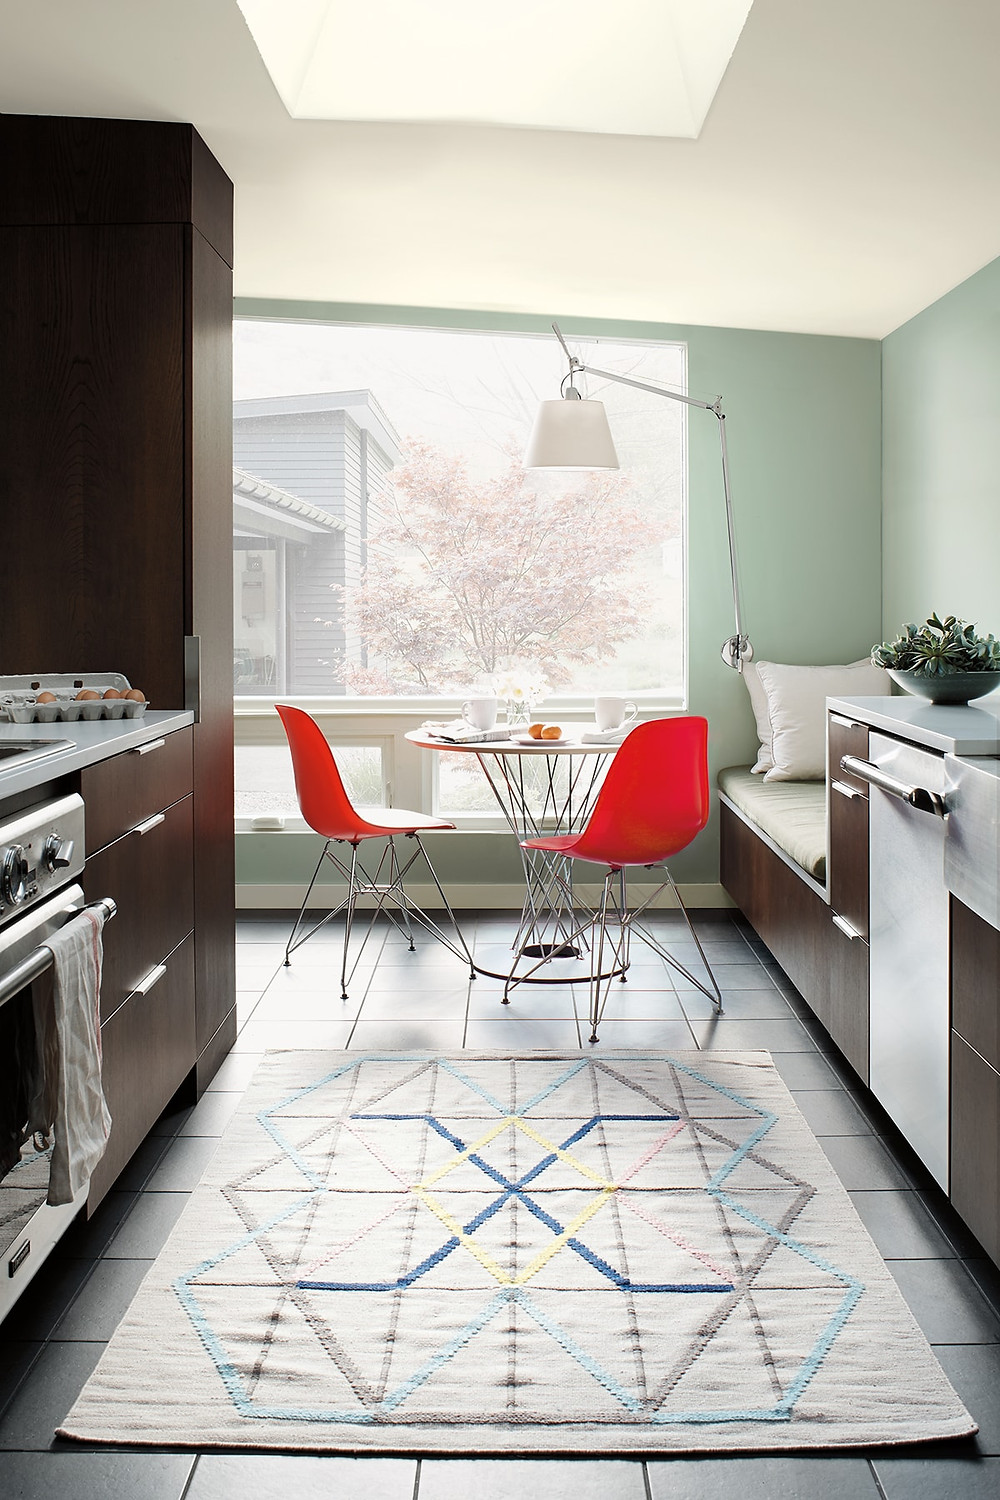 Kitchen decor with red Eames chairs and Tolomeo wall light Benjamin Moore has revealed Caliente AF-290 as its highly anticipated Colour of the Year 2018. Unveiled alongside a corresponding palette consisting of 22 enlivening hues, this vibrant and charismatic shade of red is a bold yet soothing contemporary colour that oozes confidence.